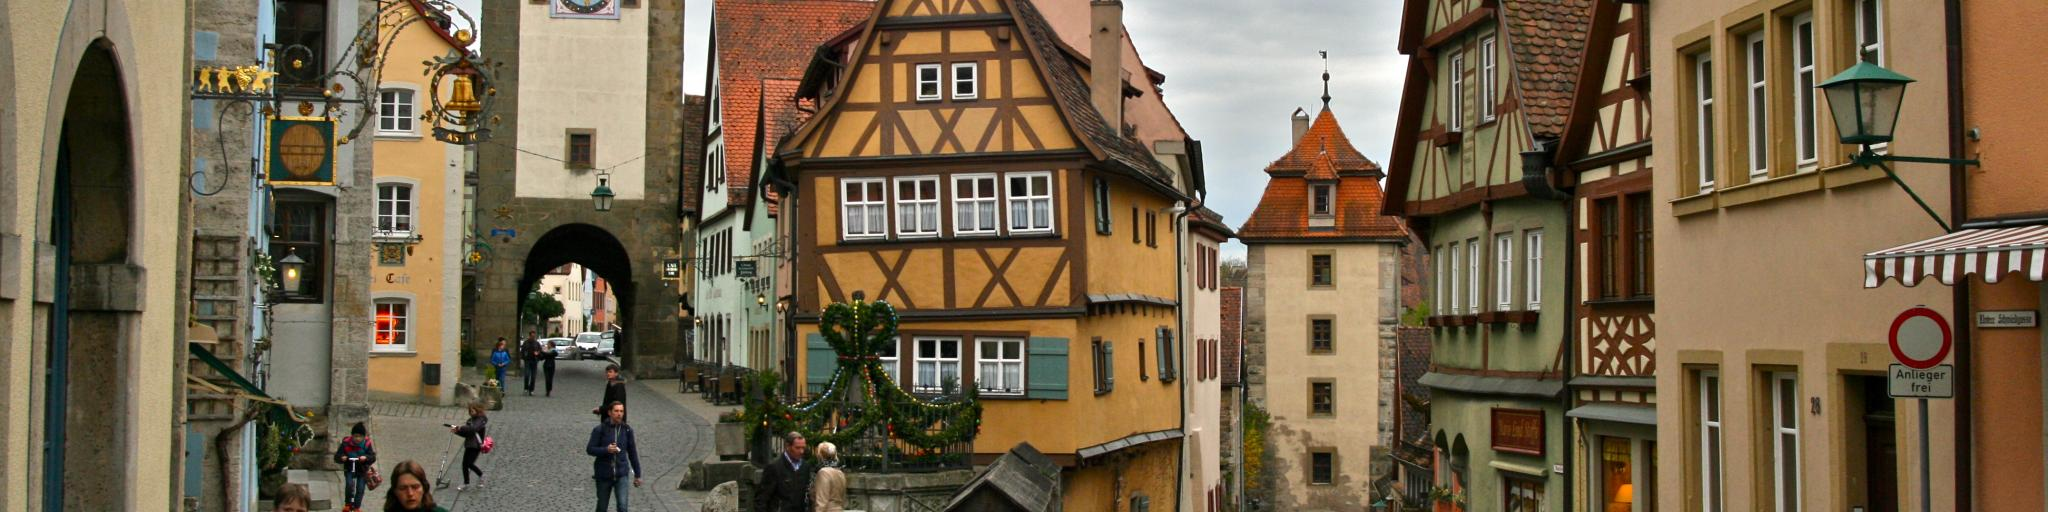 Timbered houses and cobbled streets in Rothenburg, Germany